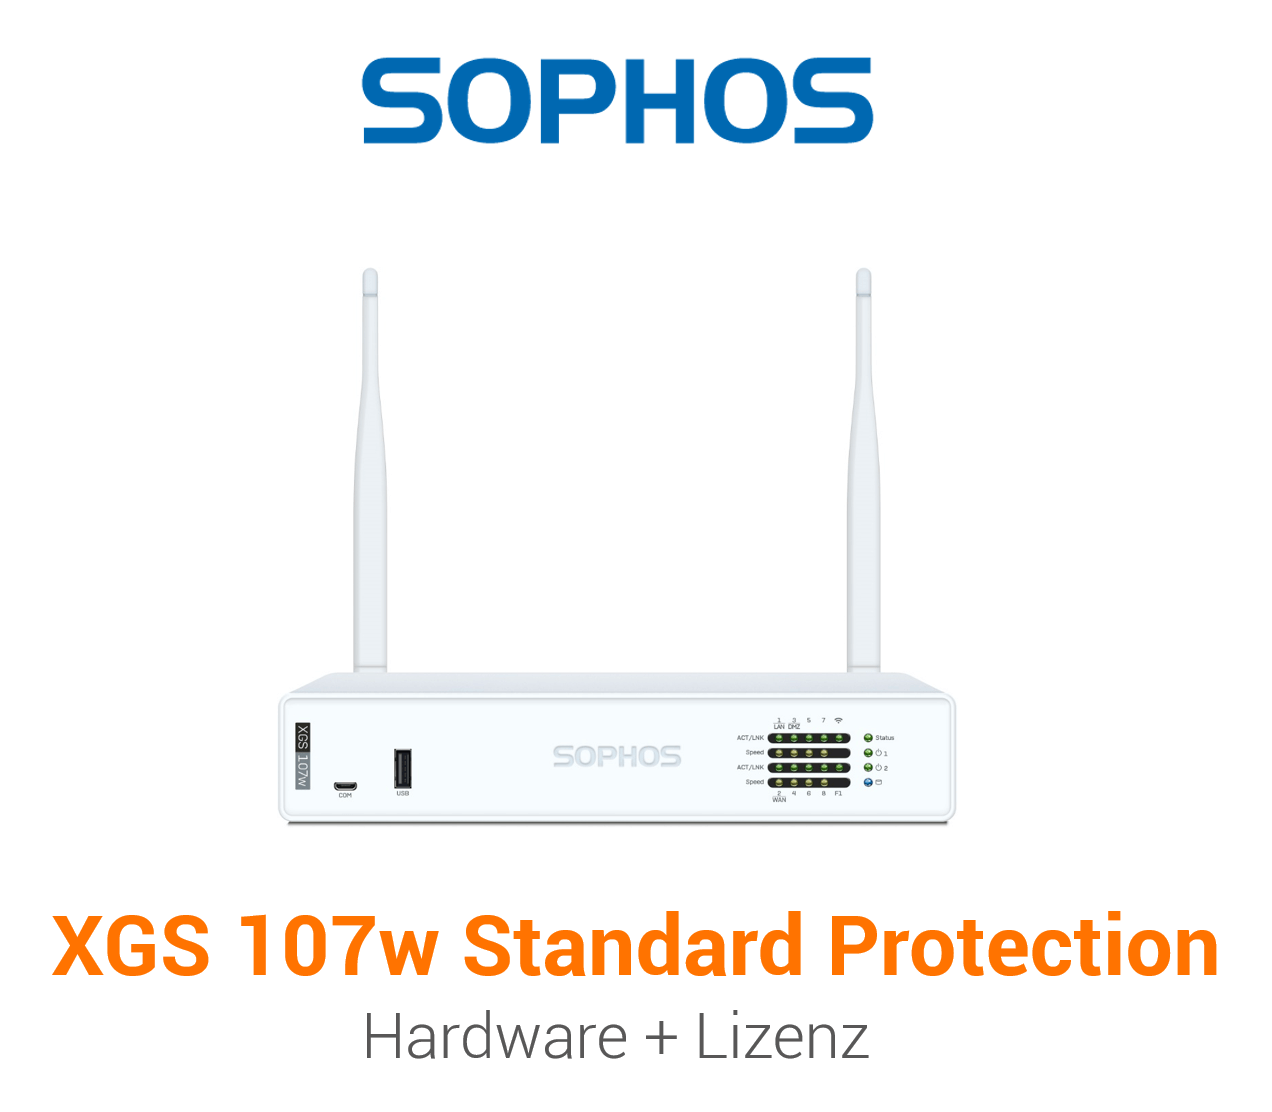 Sophos XGS 107w mit Standard Protection